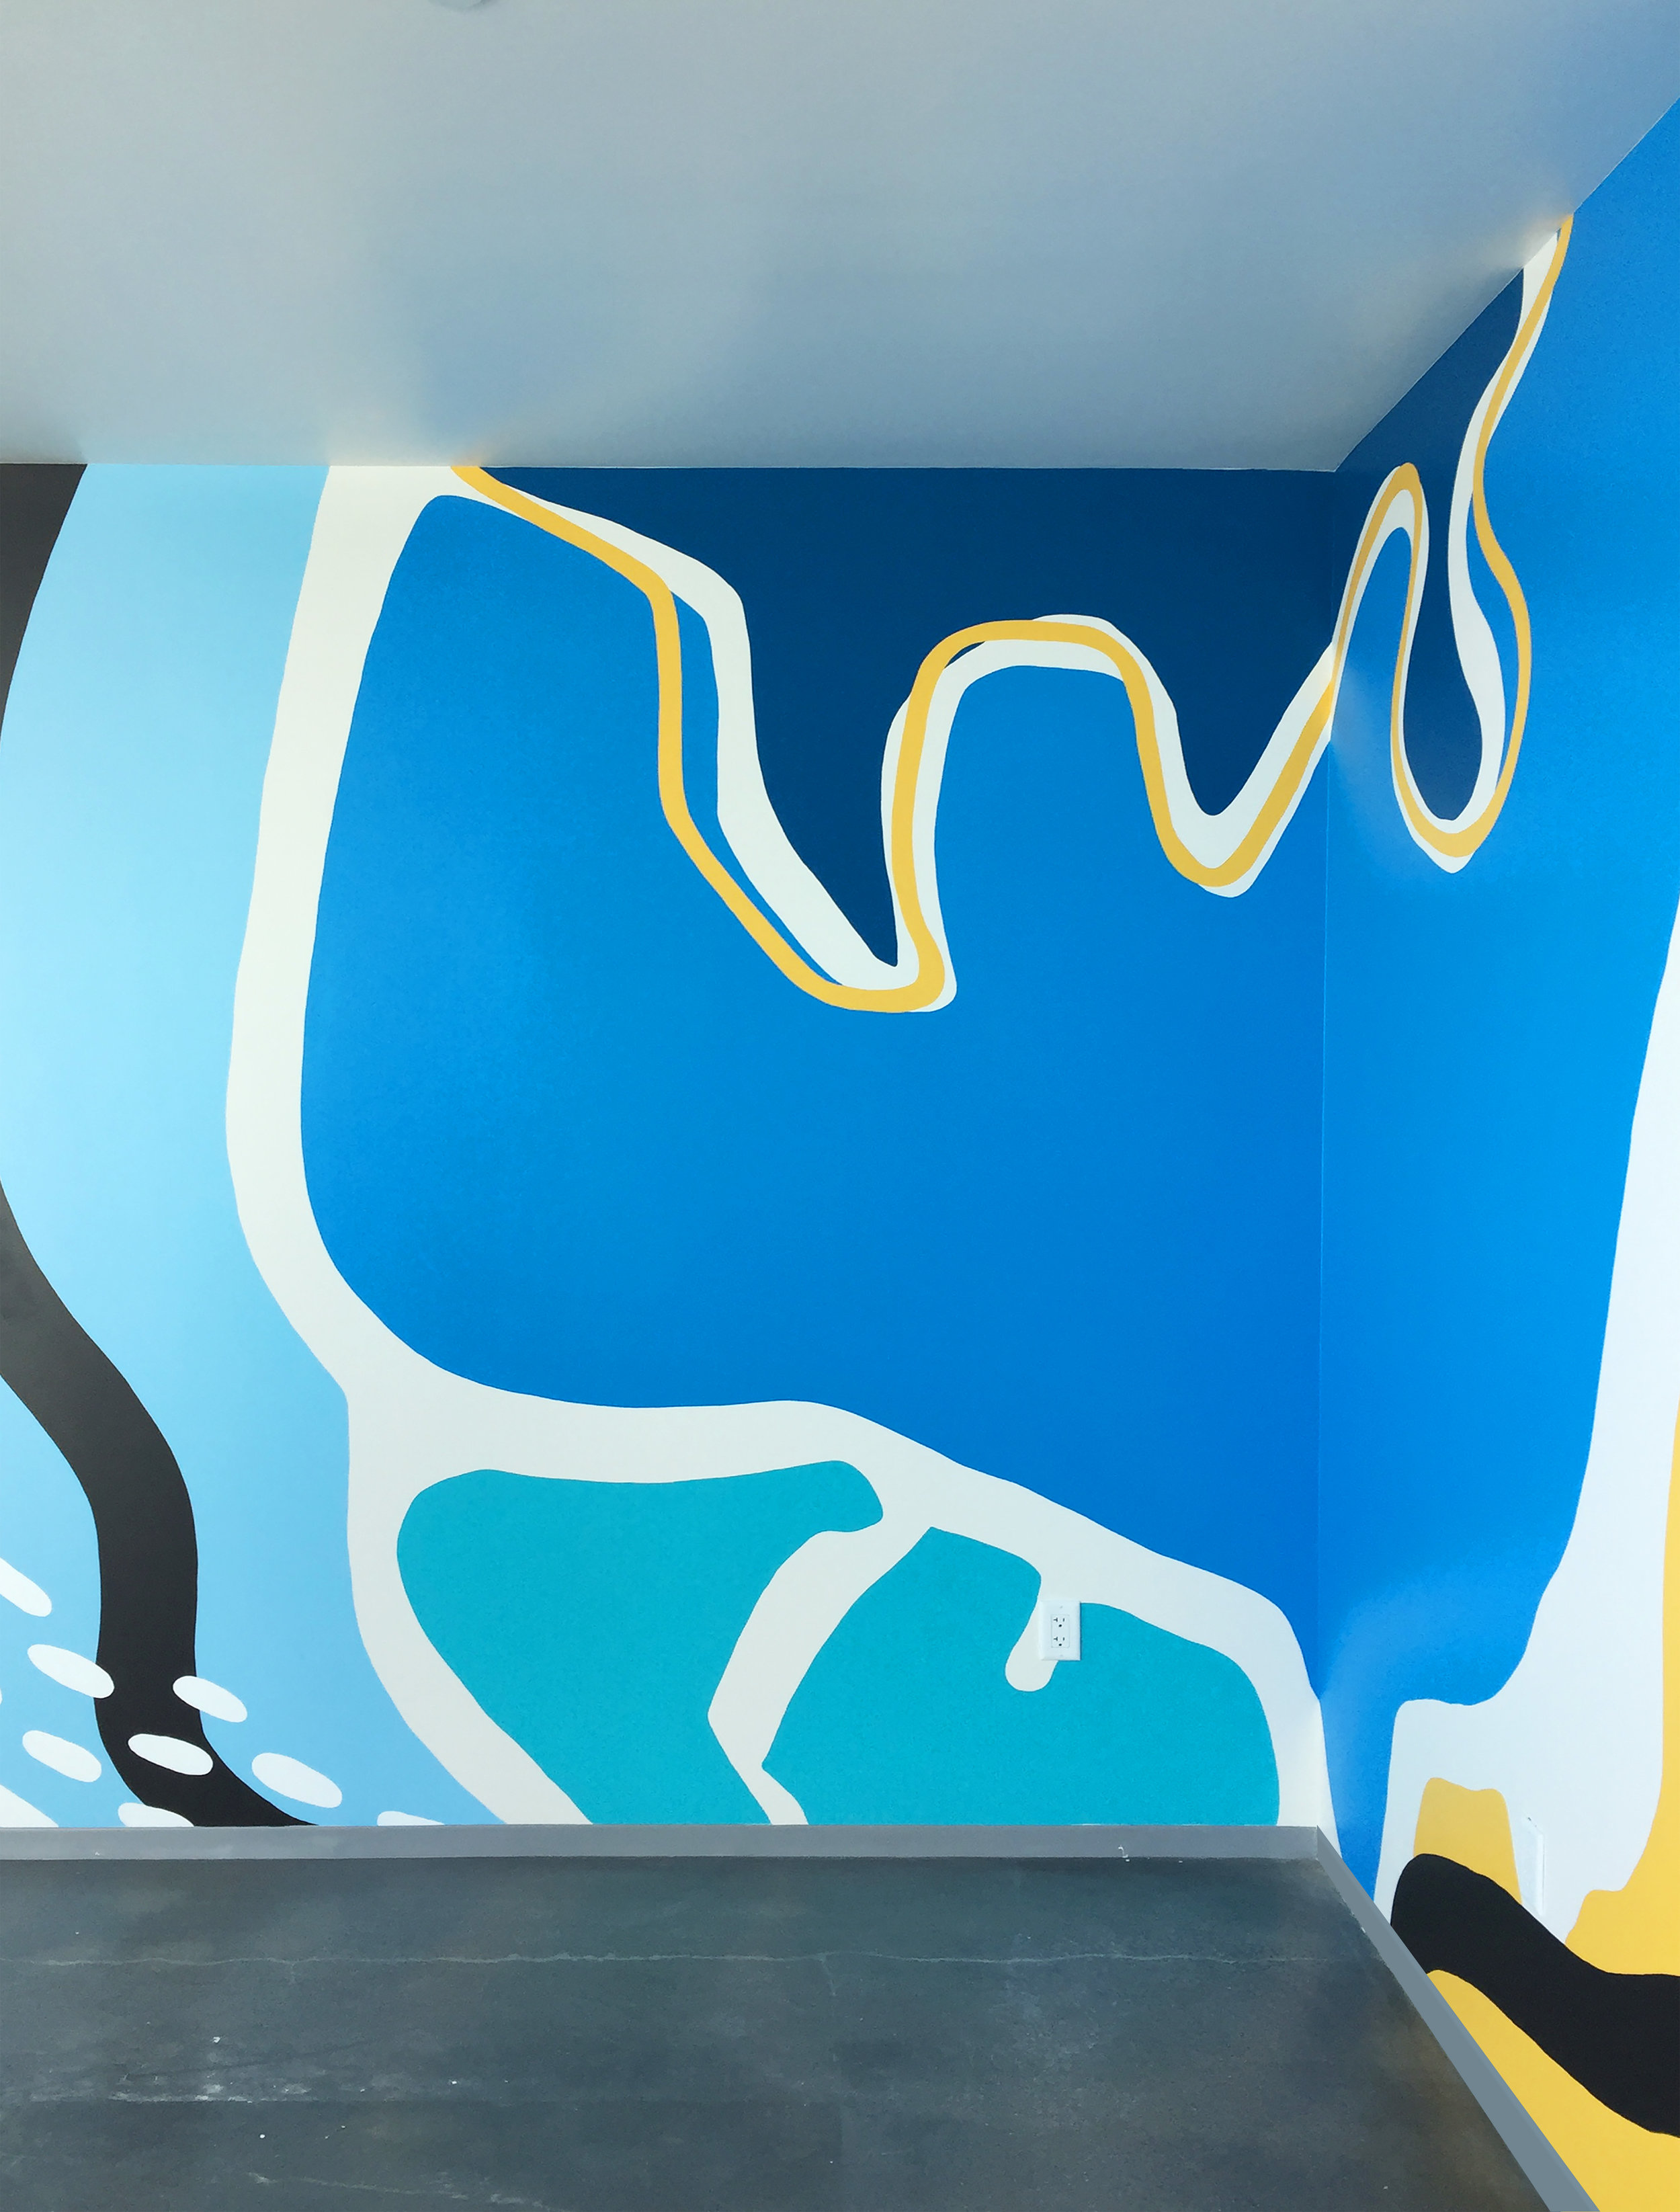 Office-commercial-mural-san-francisco-google-wall-and-wall-mural-company_002.jpg